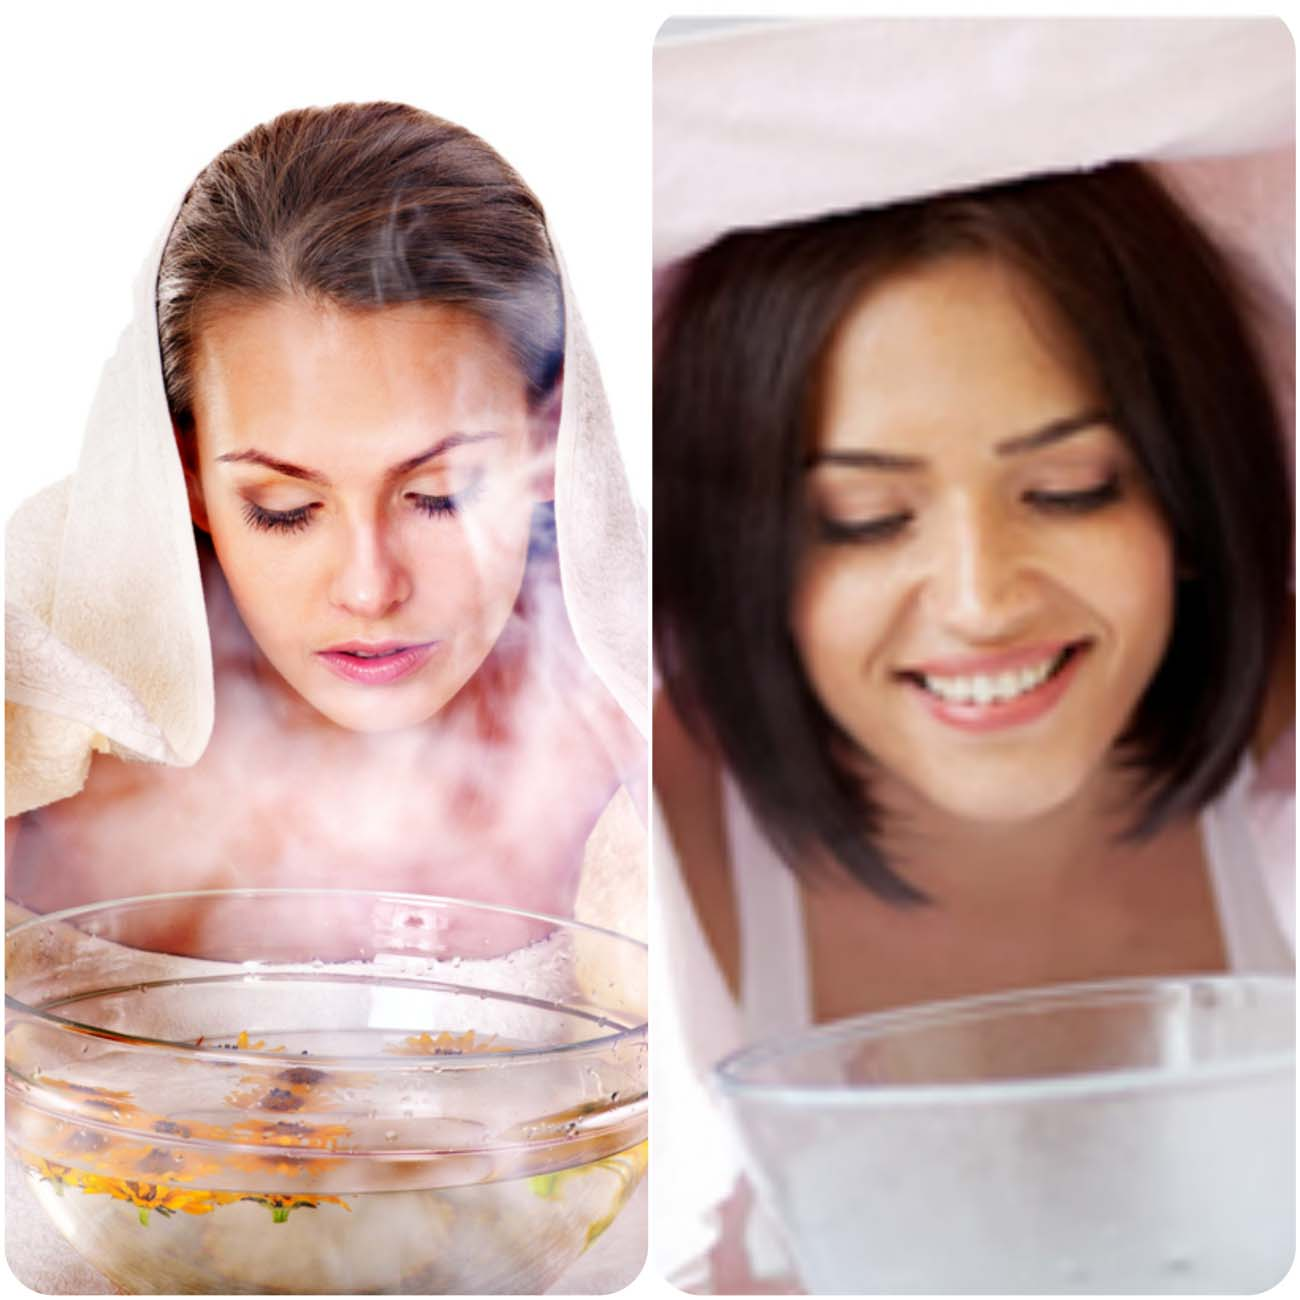 tips to avoid from dead skin by steam bath